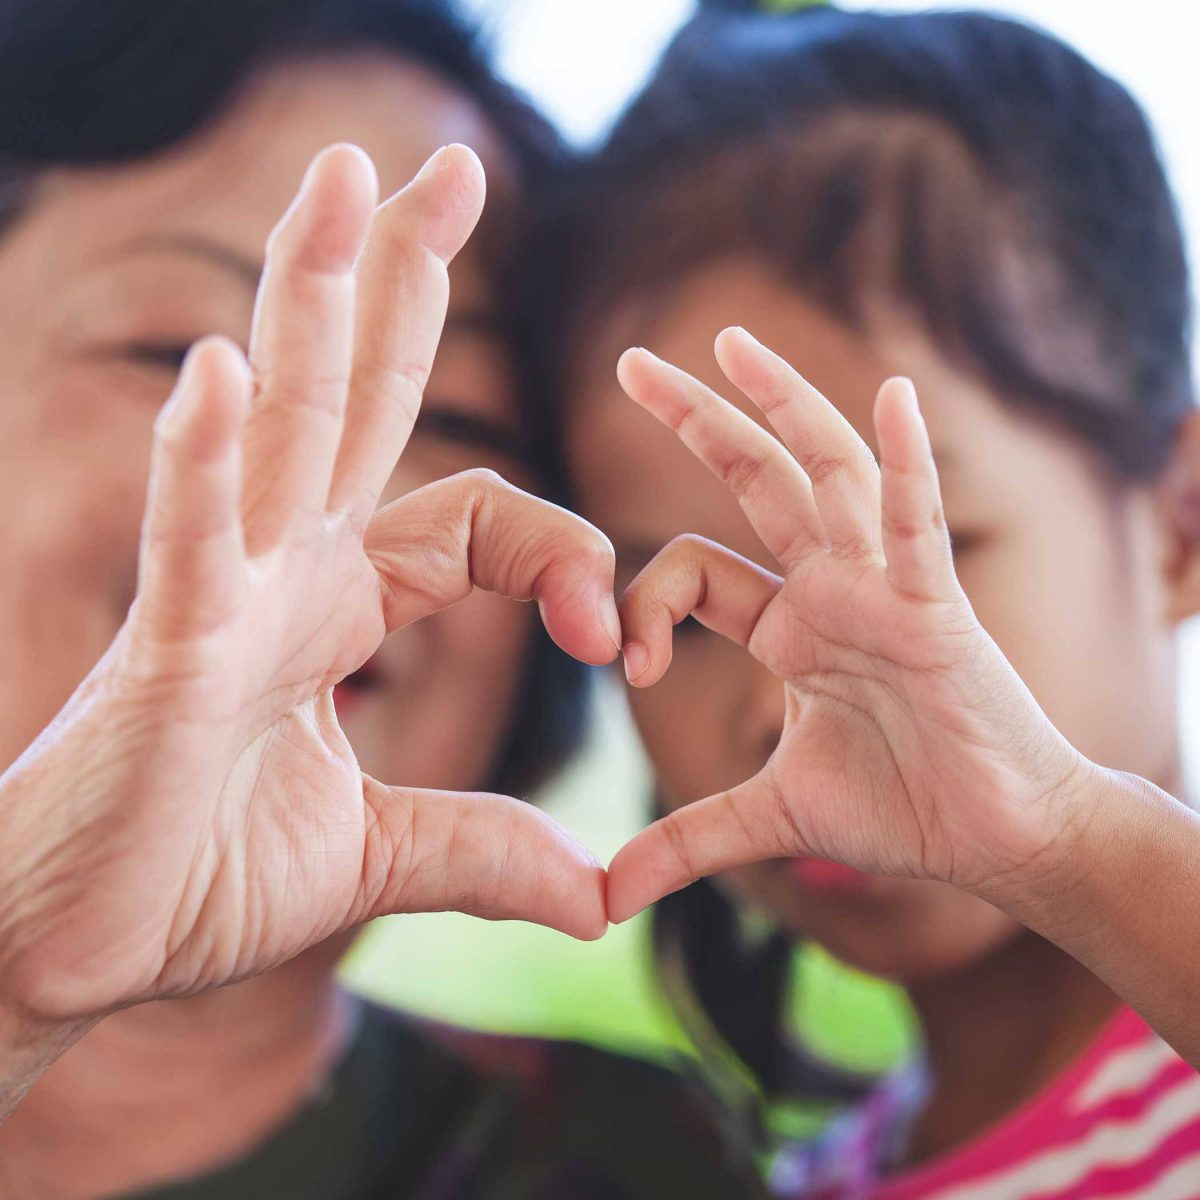 Mother and daughter holding up heart signs together.